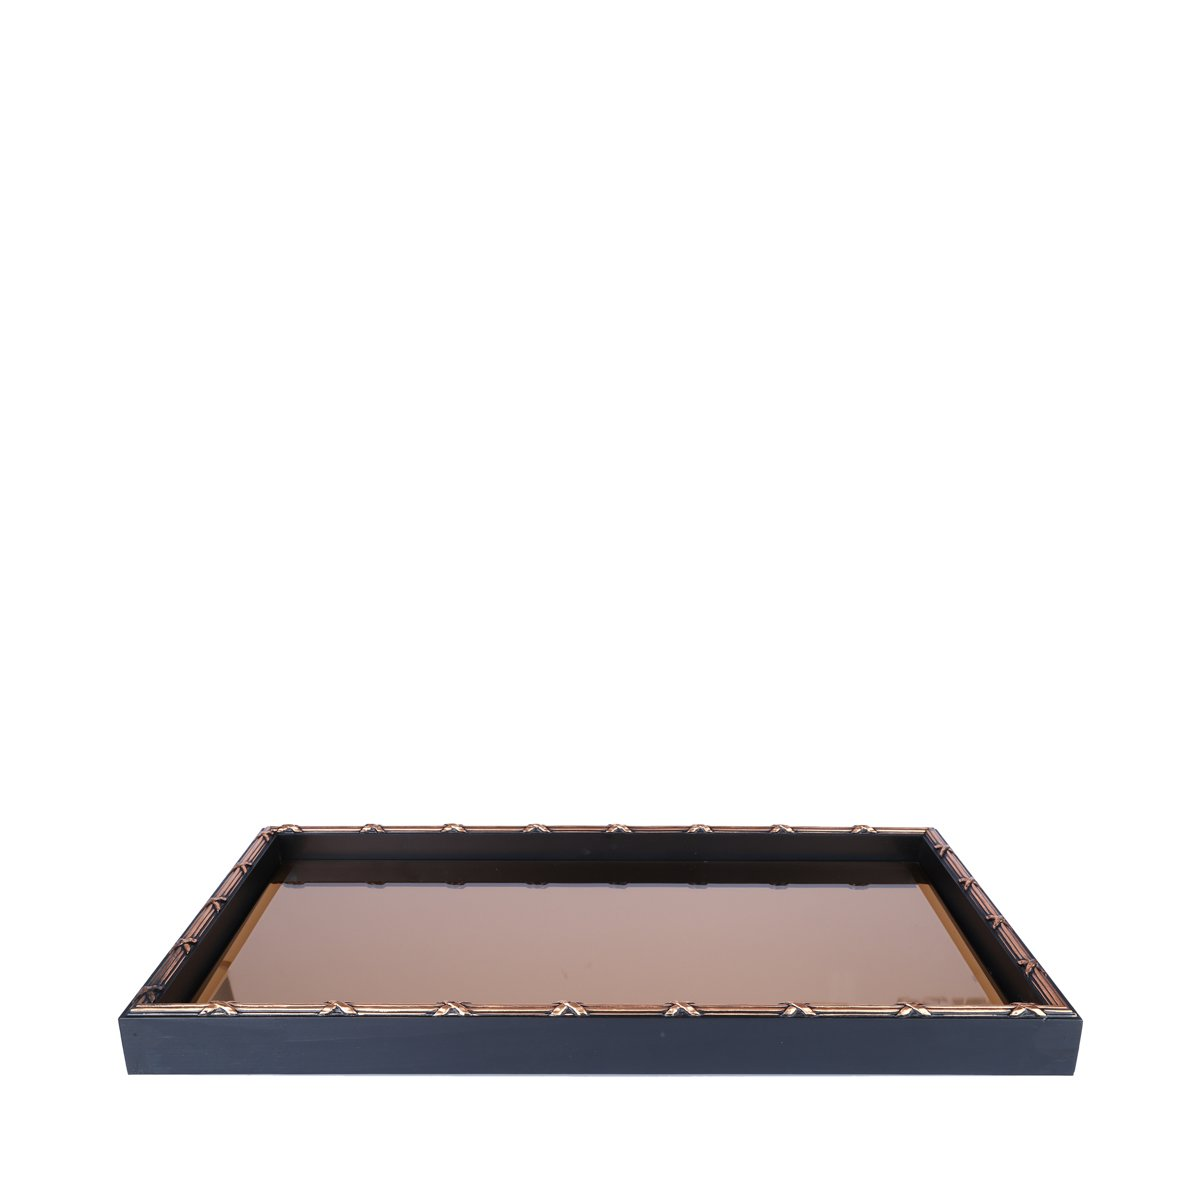 Woodart Croisé Wooden Serving Tray with Handles (Brown, 19x11) by Wood Art (Image #1)